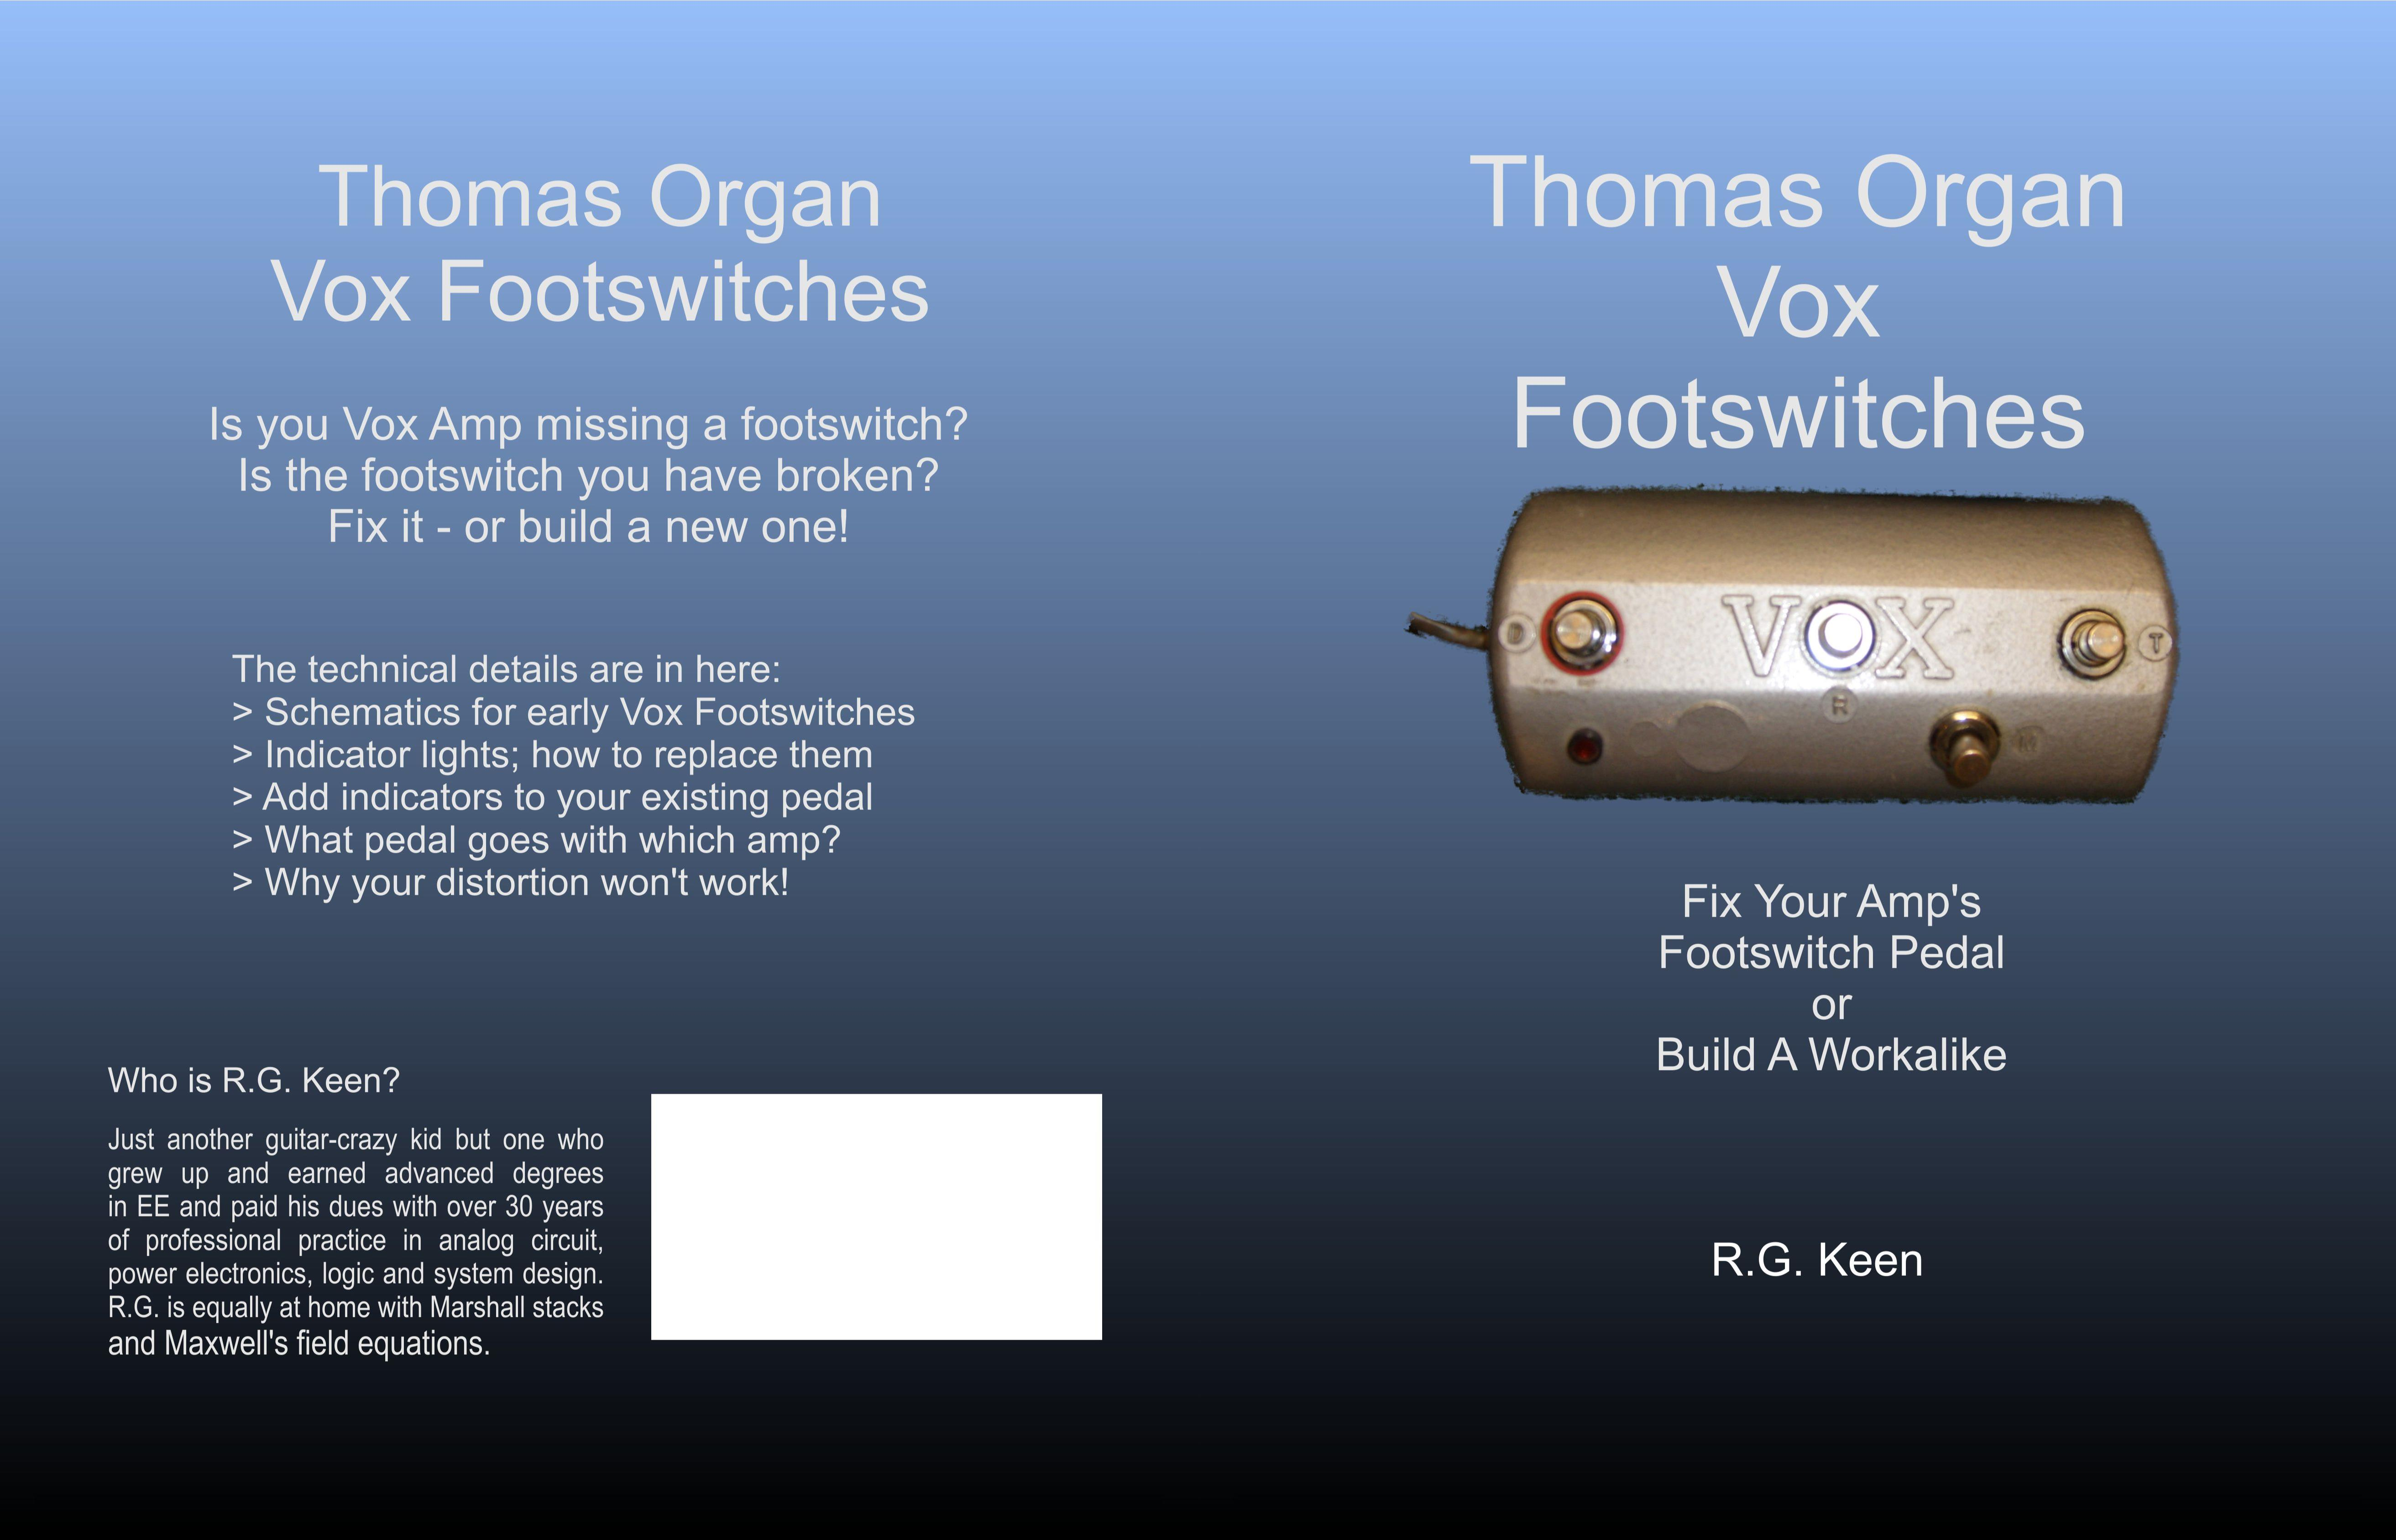 Thomas Organ Vox Footswitches cover image